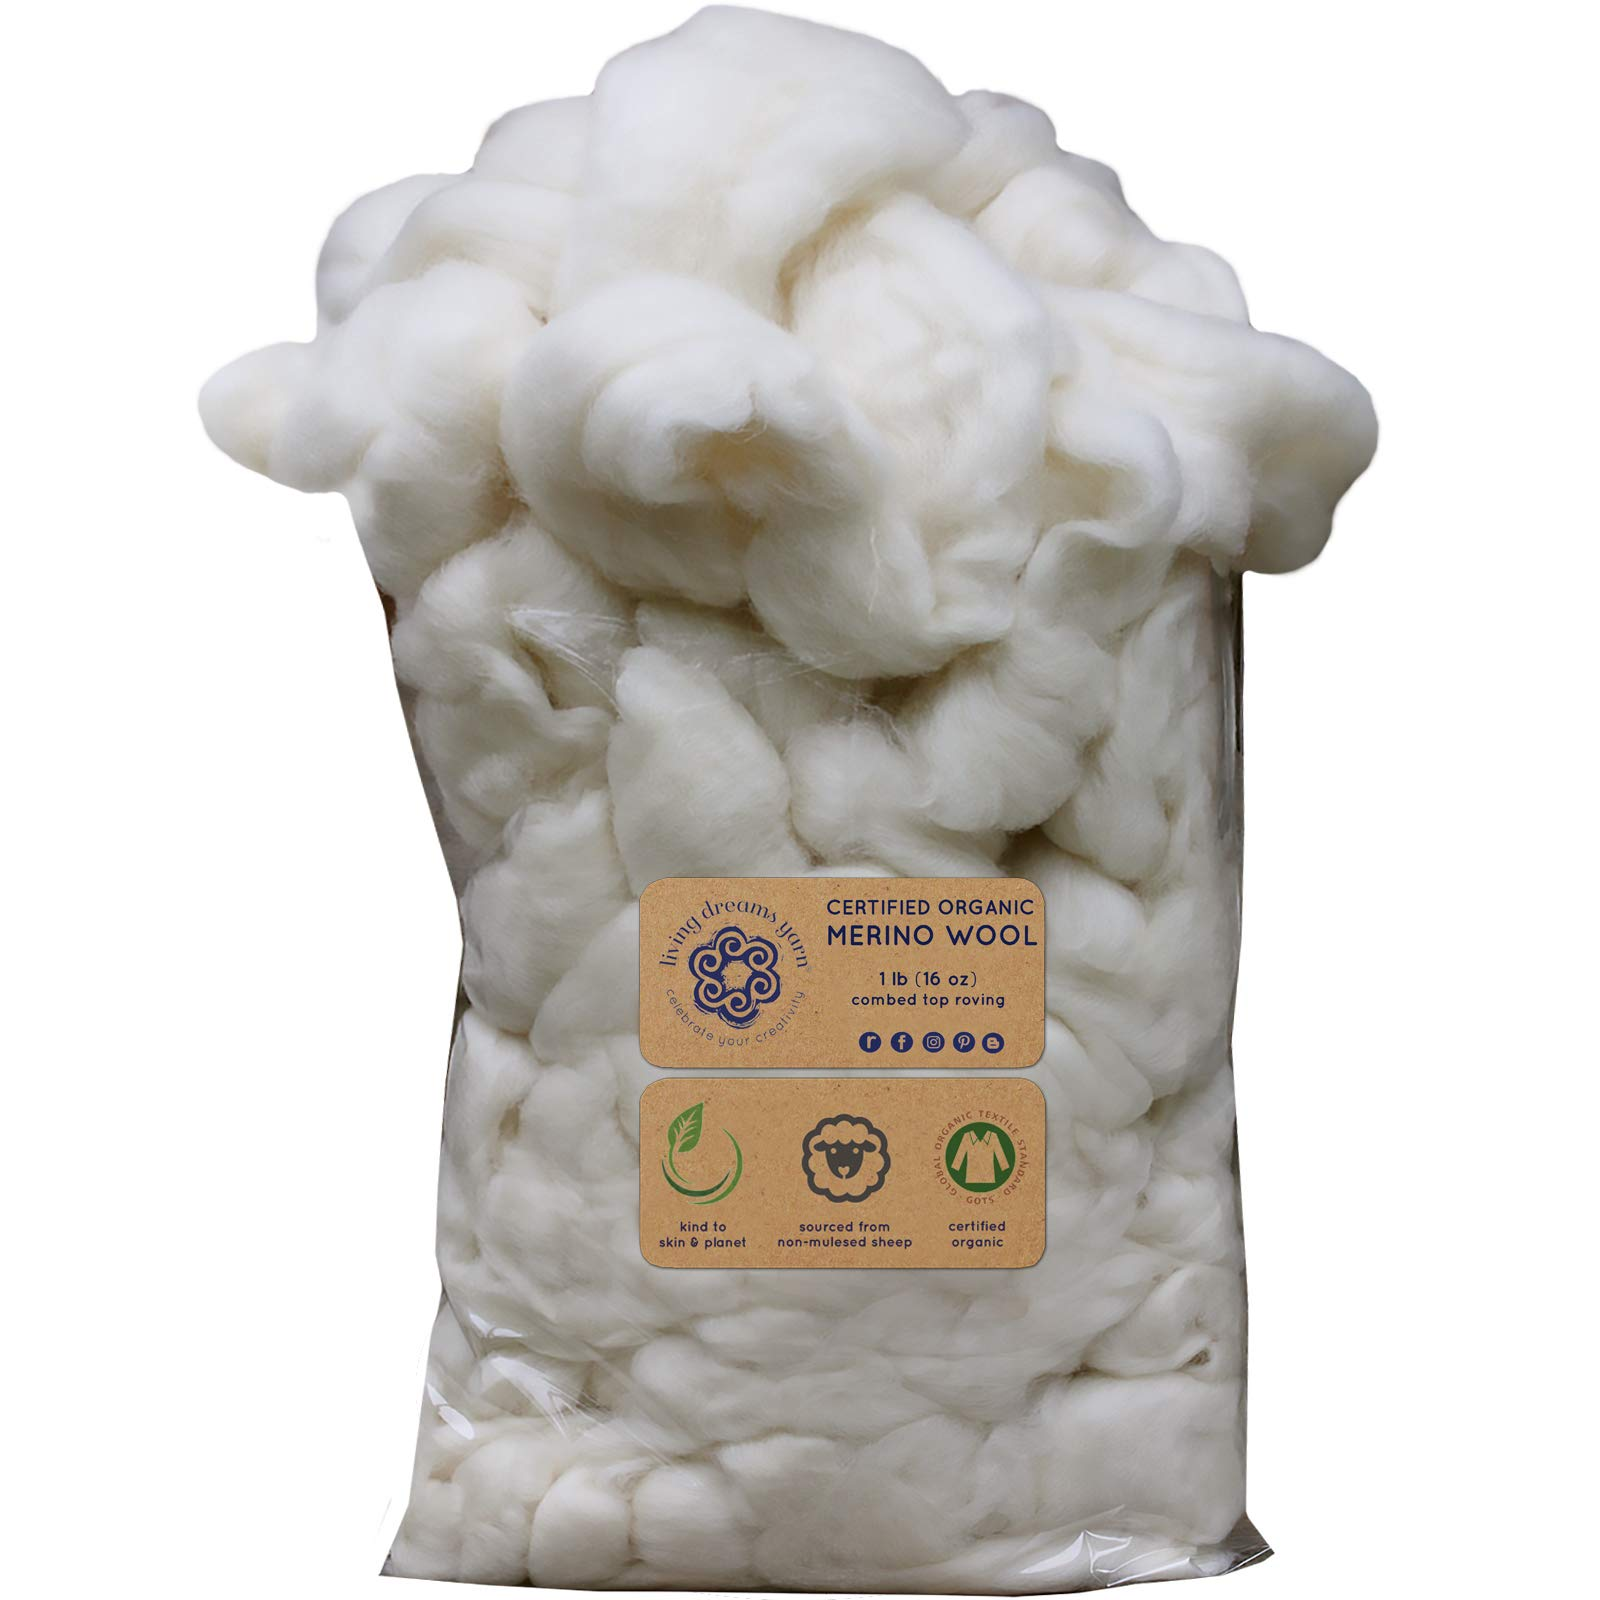 CERTIFIED ORGANIC Merino Wool Roving. Ethically & Responsibly Sourced Fiber for Spinning, Felting, Filling and Dryer Balls - 1 LB Bag, Natural White